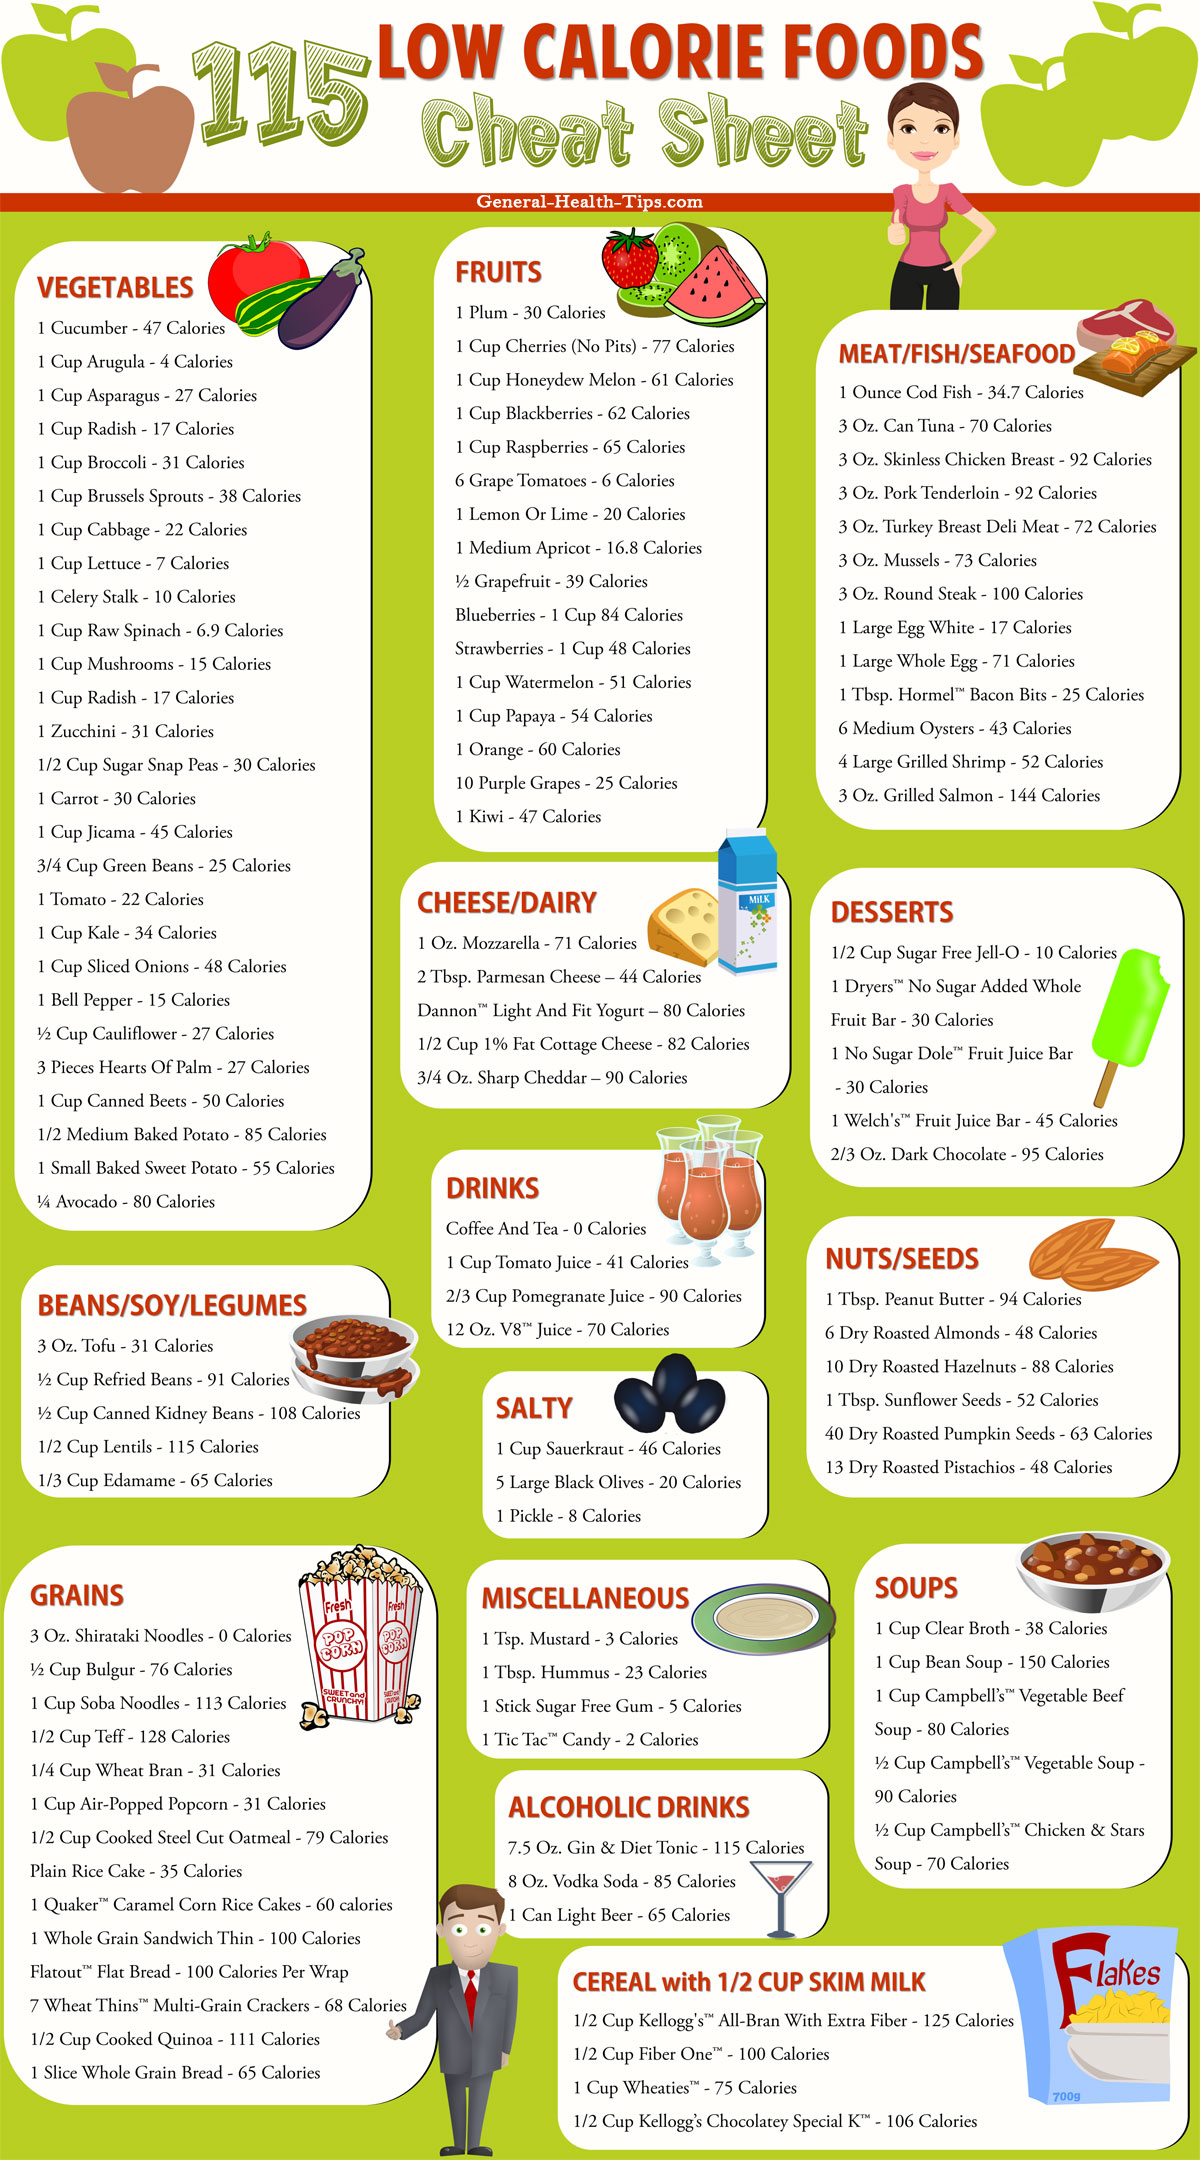 Trying To Lose Weight Fast? Try These 115 Low Calorie Foods